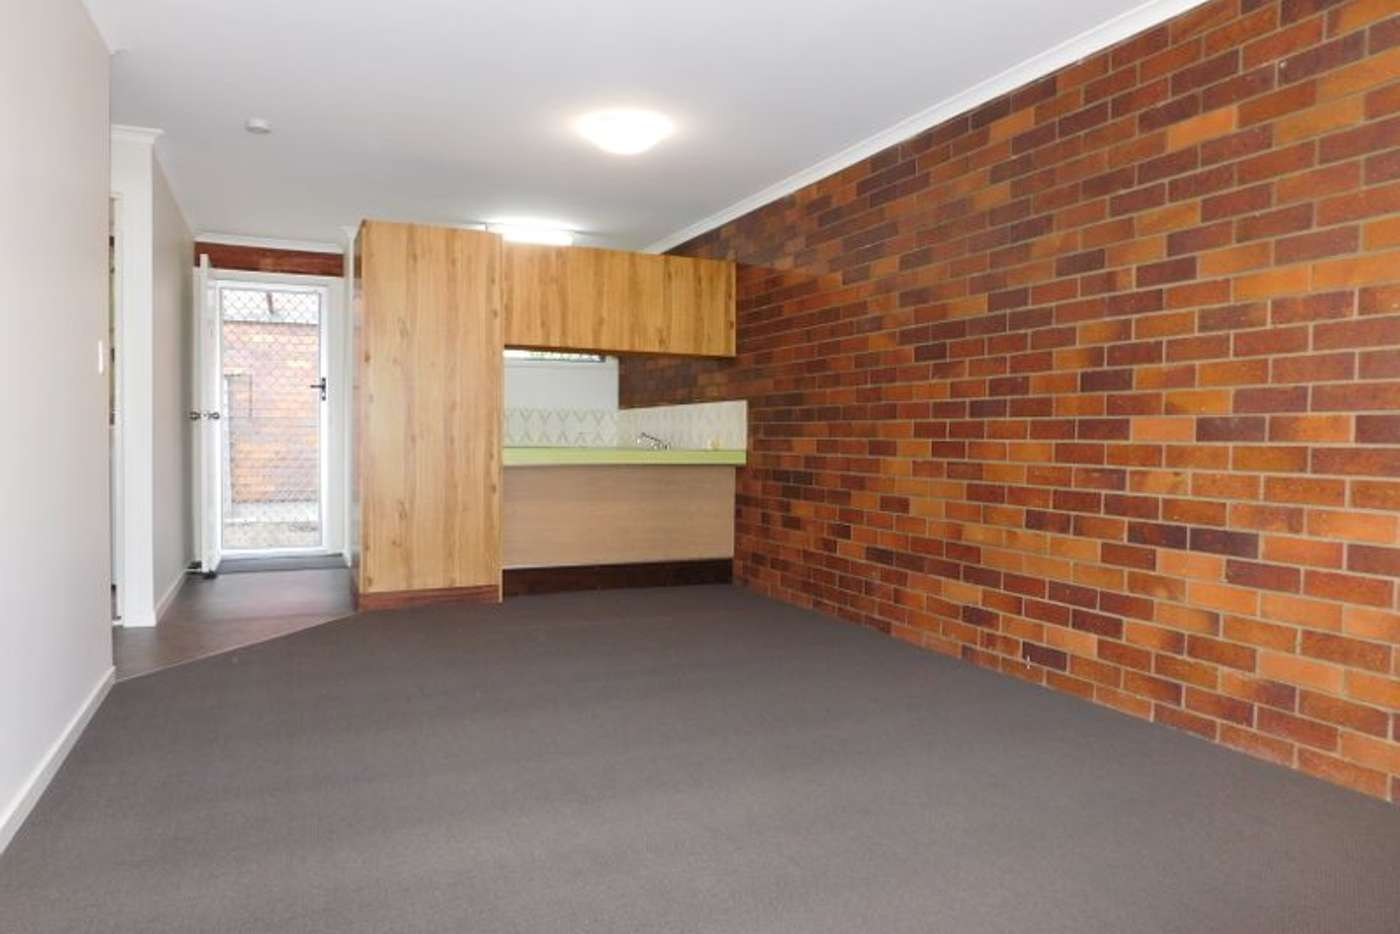 Main view of Homely unit listing, 4/55 Thorn Street, Ipswich QLD 4305